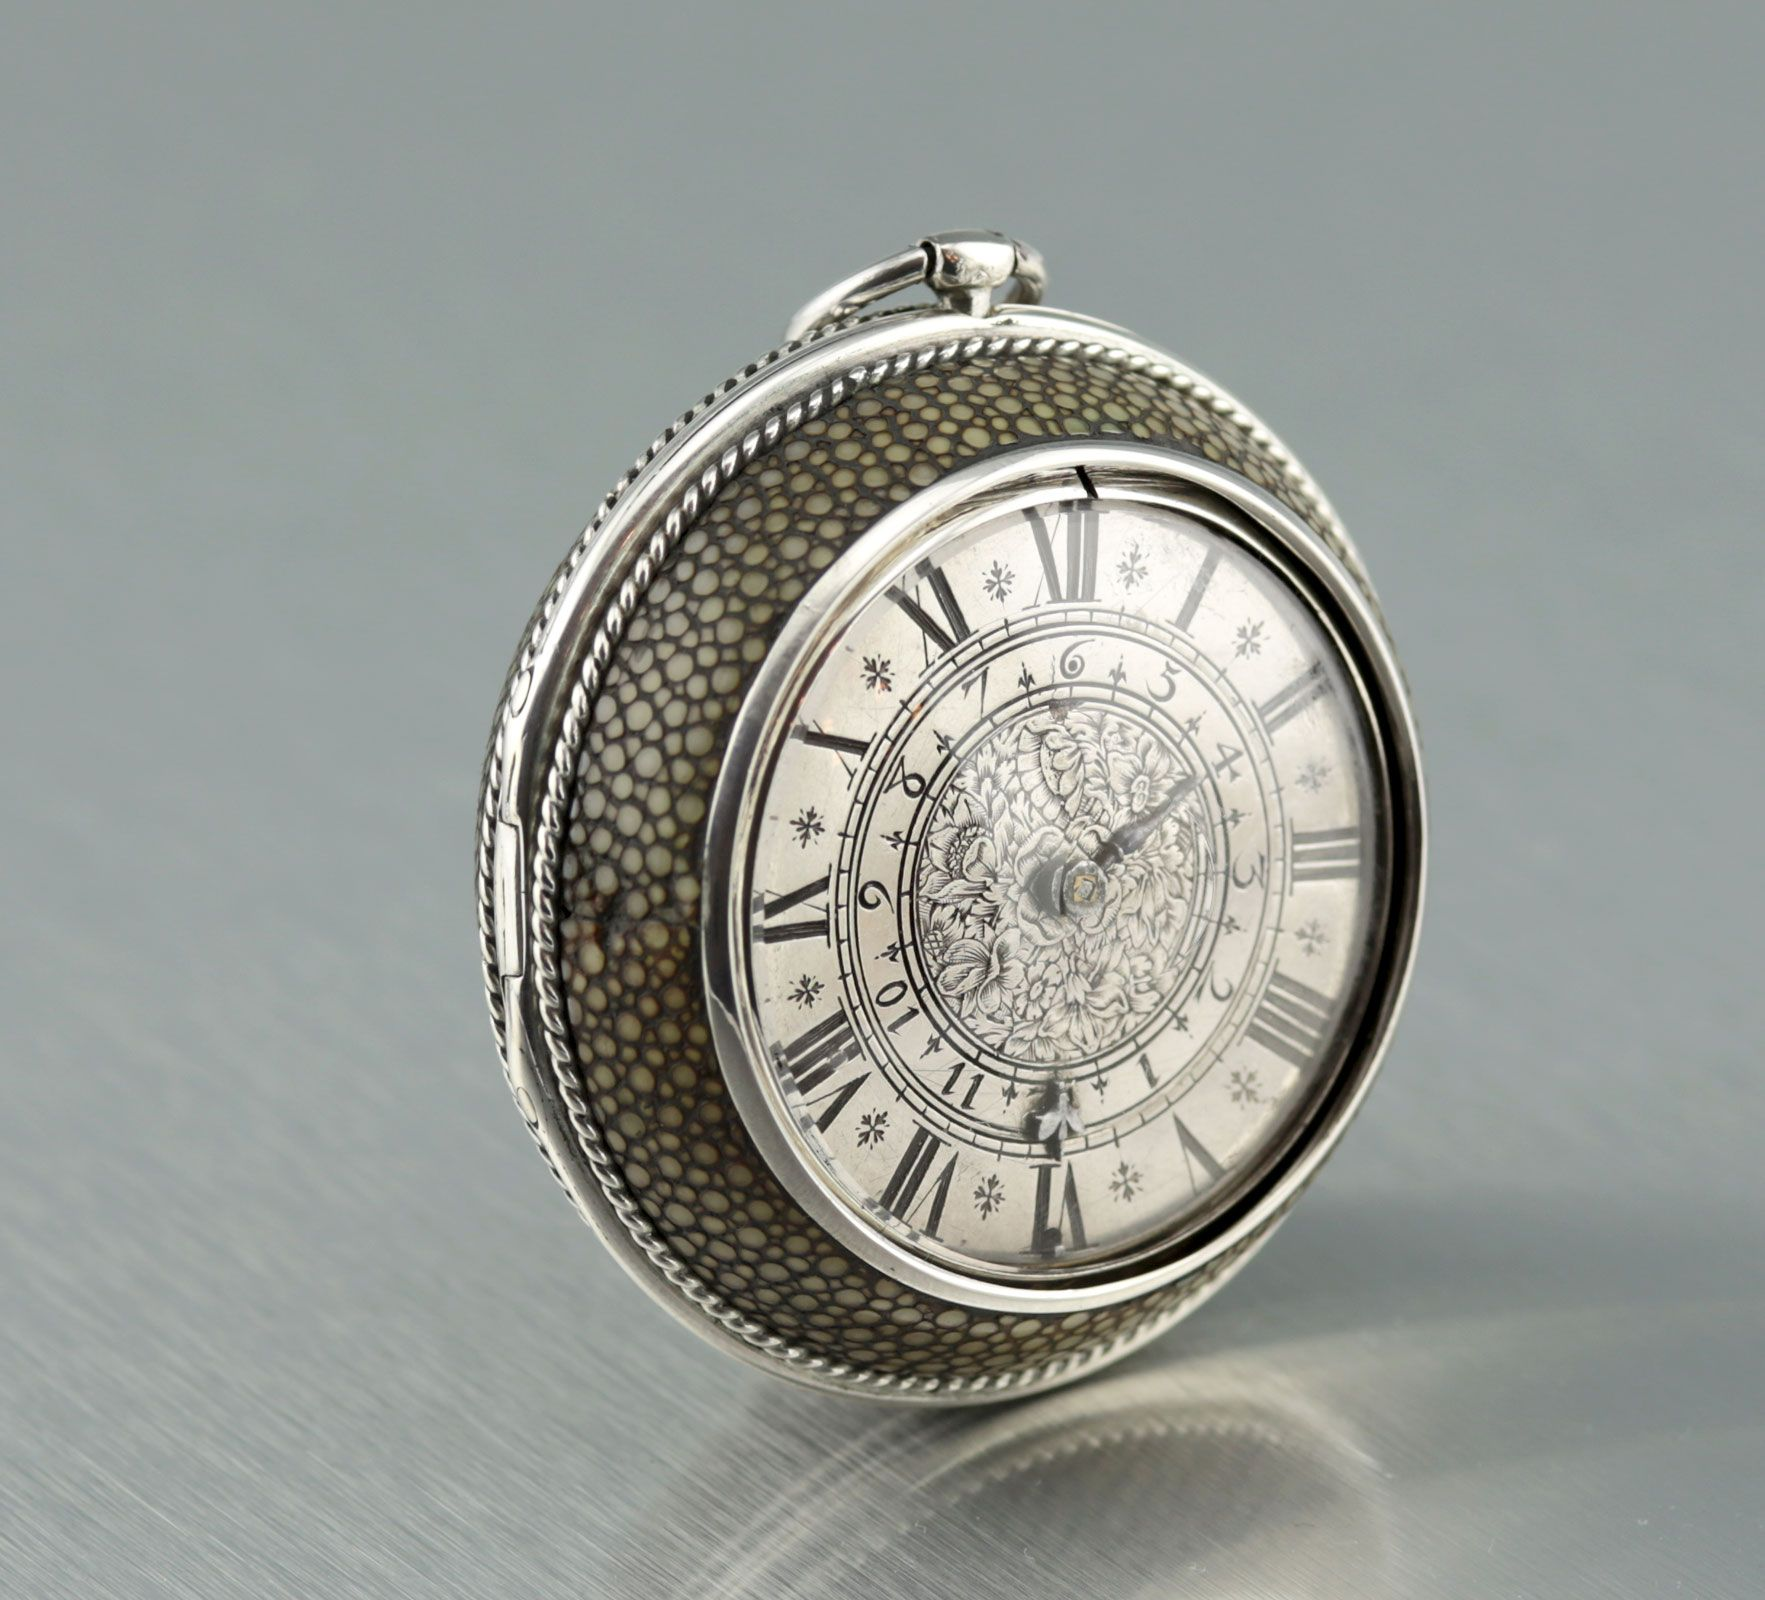 Very early French pocket watch with alarm. The case is fine silver with outer case made of shagreen. Made by Jean Hubert the Younger - Rouen, France c1680 (carsten-antik)